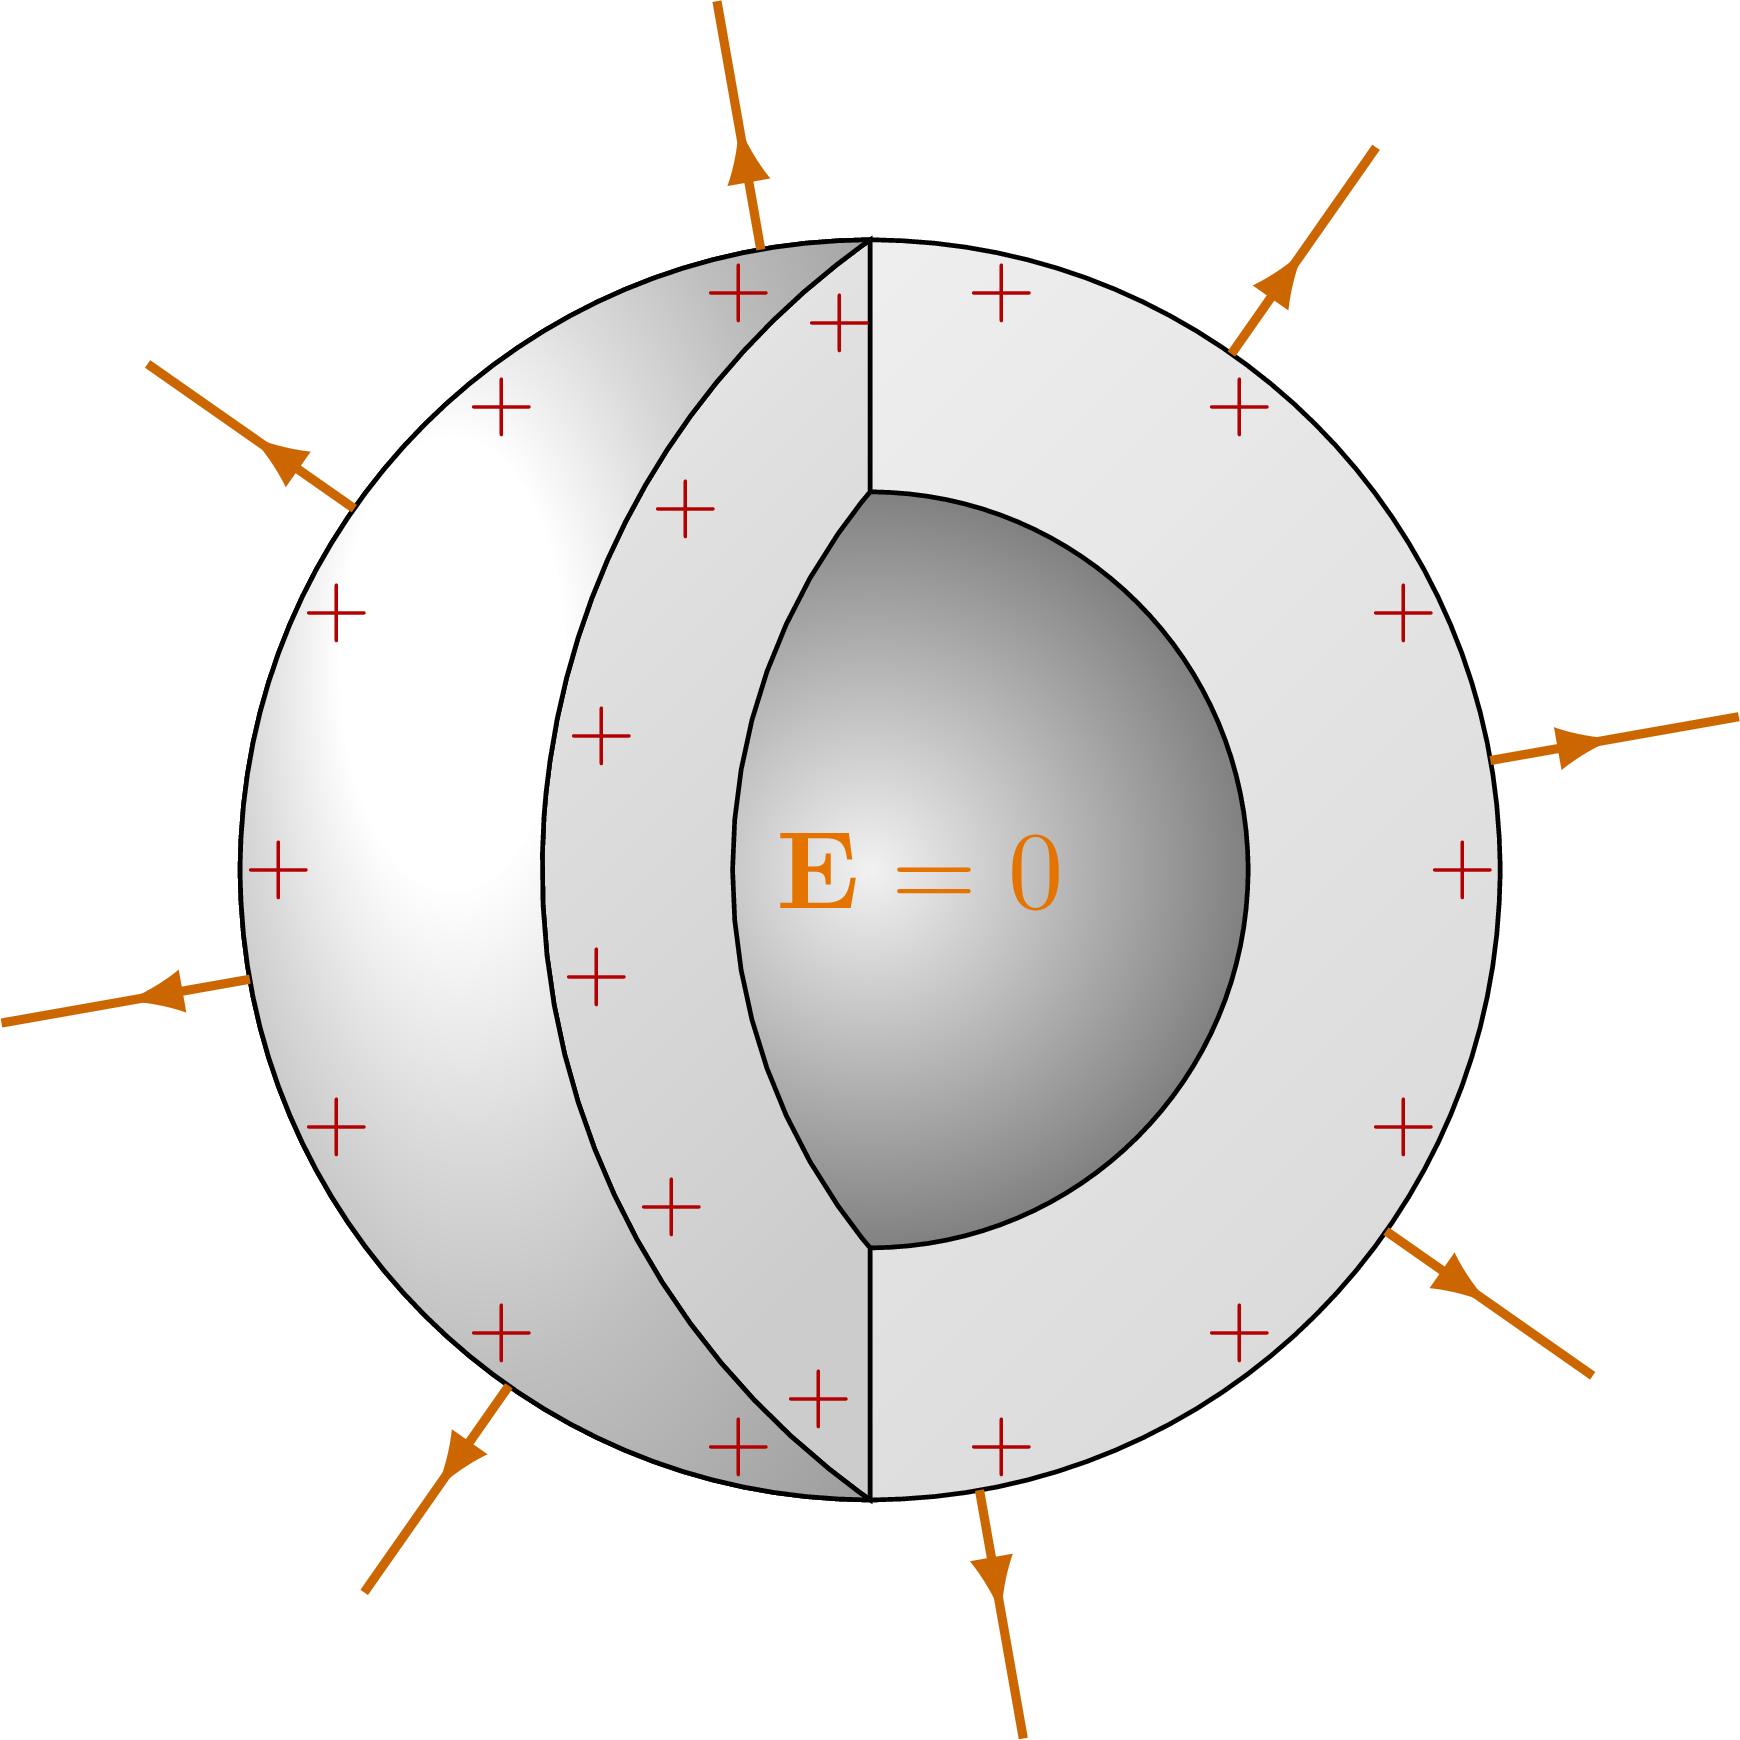 electric_field_sphere-008.png